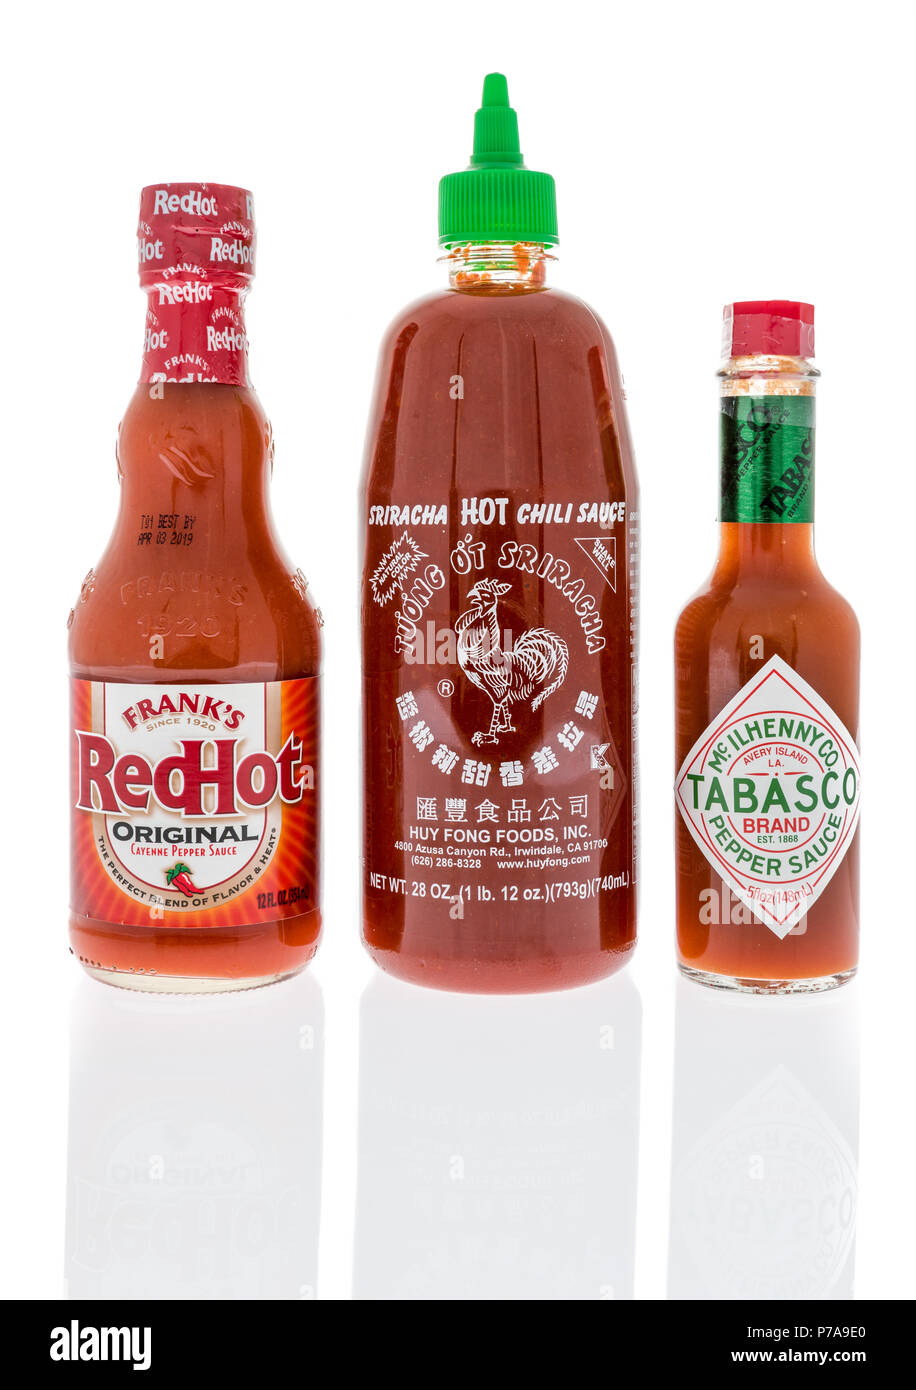 Download Winneconne Wi 1 July 2018 Bottles Of The Best Selling Hot Sauce In The World Includes Frank S Redhot Sriracha Chili Sauce And Tabasco Pepper Sauc Stock Photo Alamy Yellowimages Mockups